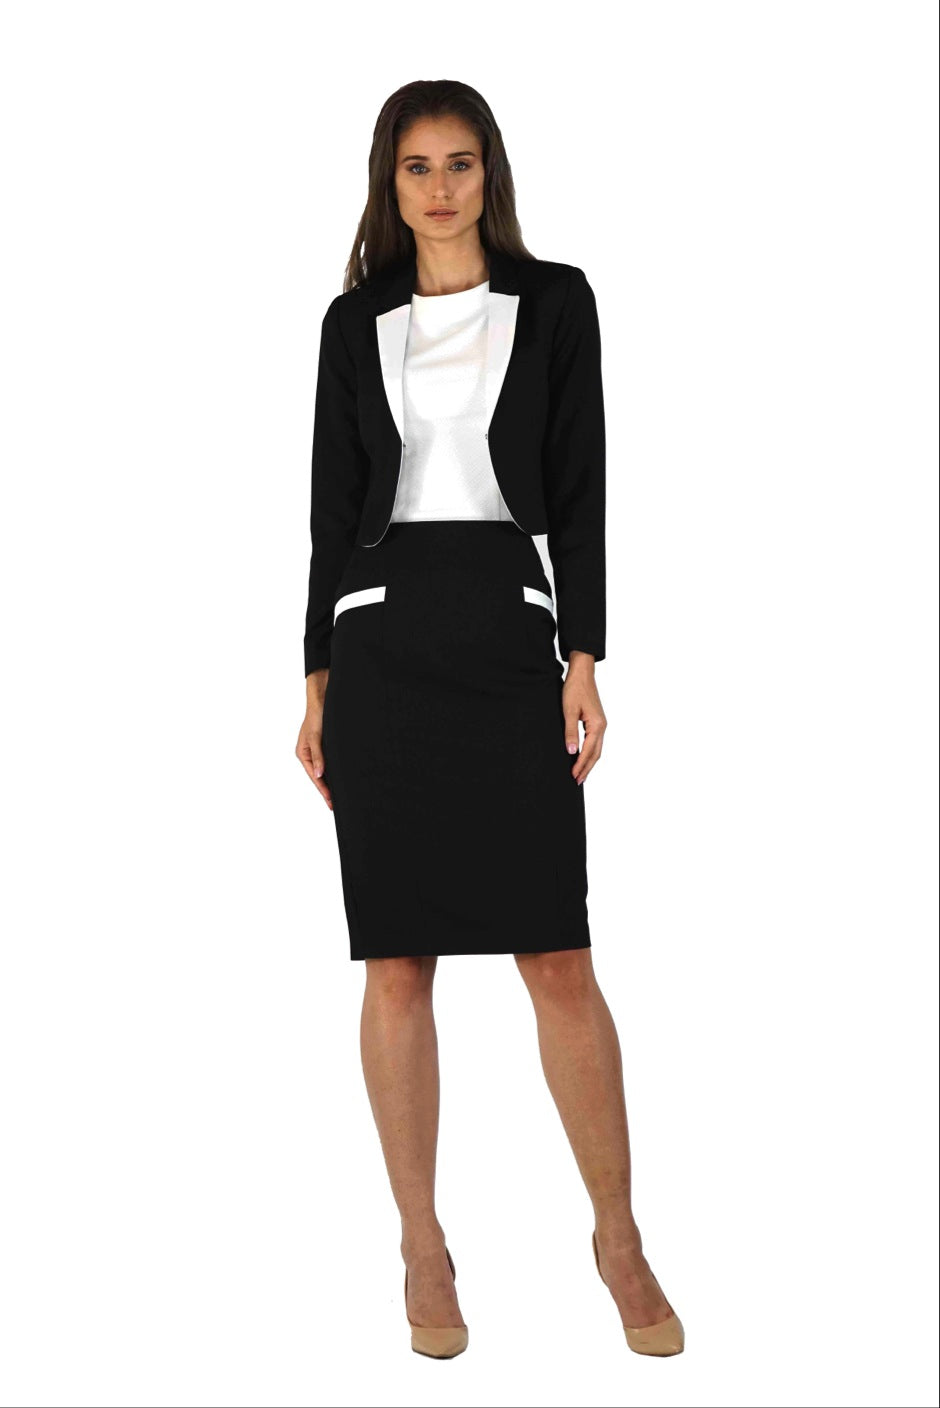 Take Flight Skirt Suit